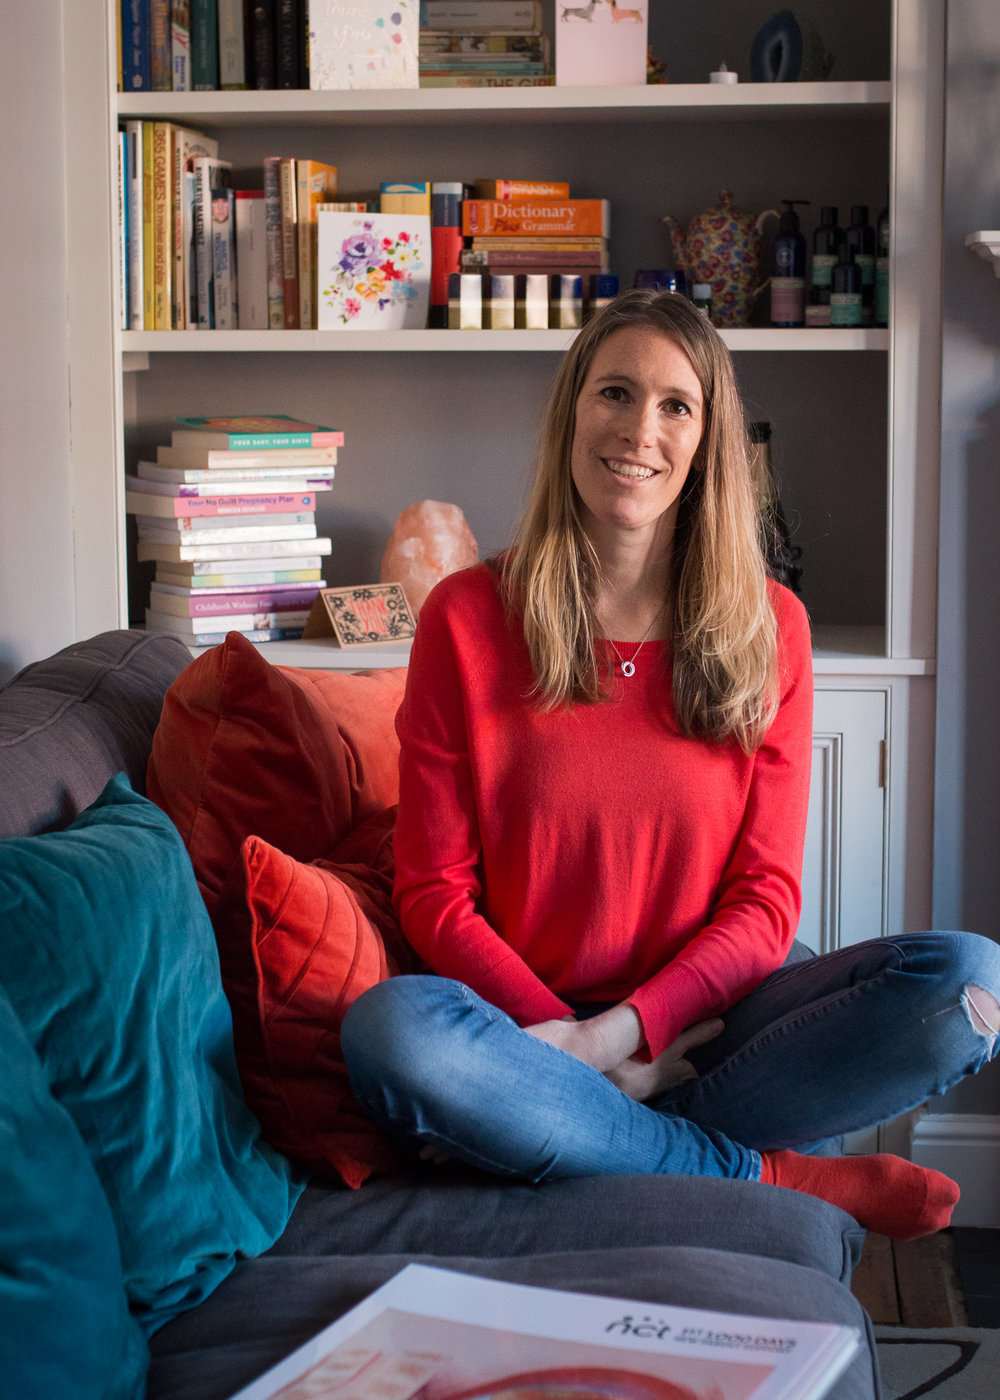 Leanne works with parents to enable them to have a positive birth experience. She has opened up her home to teach hypnobirthing to mothers-to-be. With Leanne's support more mothers feel empowered to make their own decisions during their birthing journey.  www.brighterbirthing.com